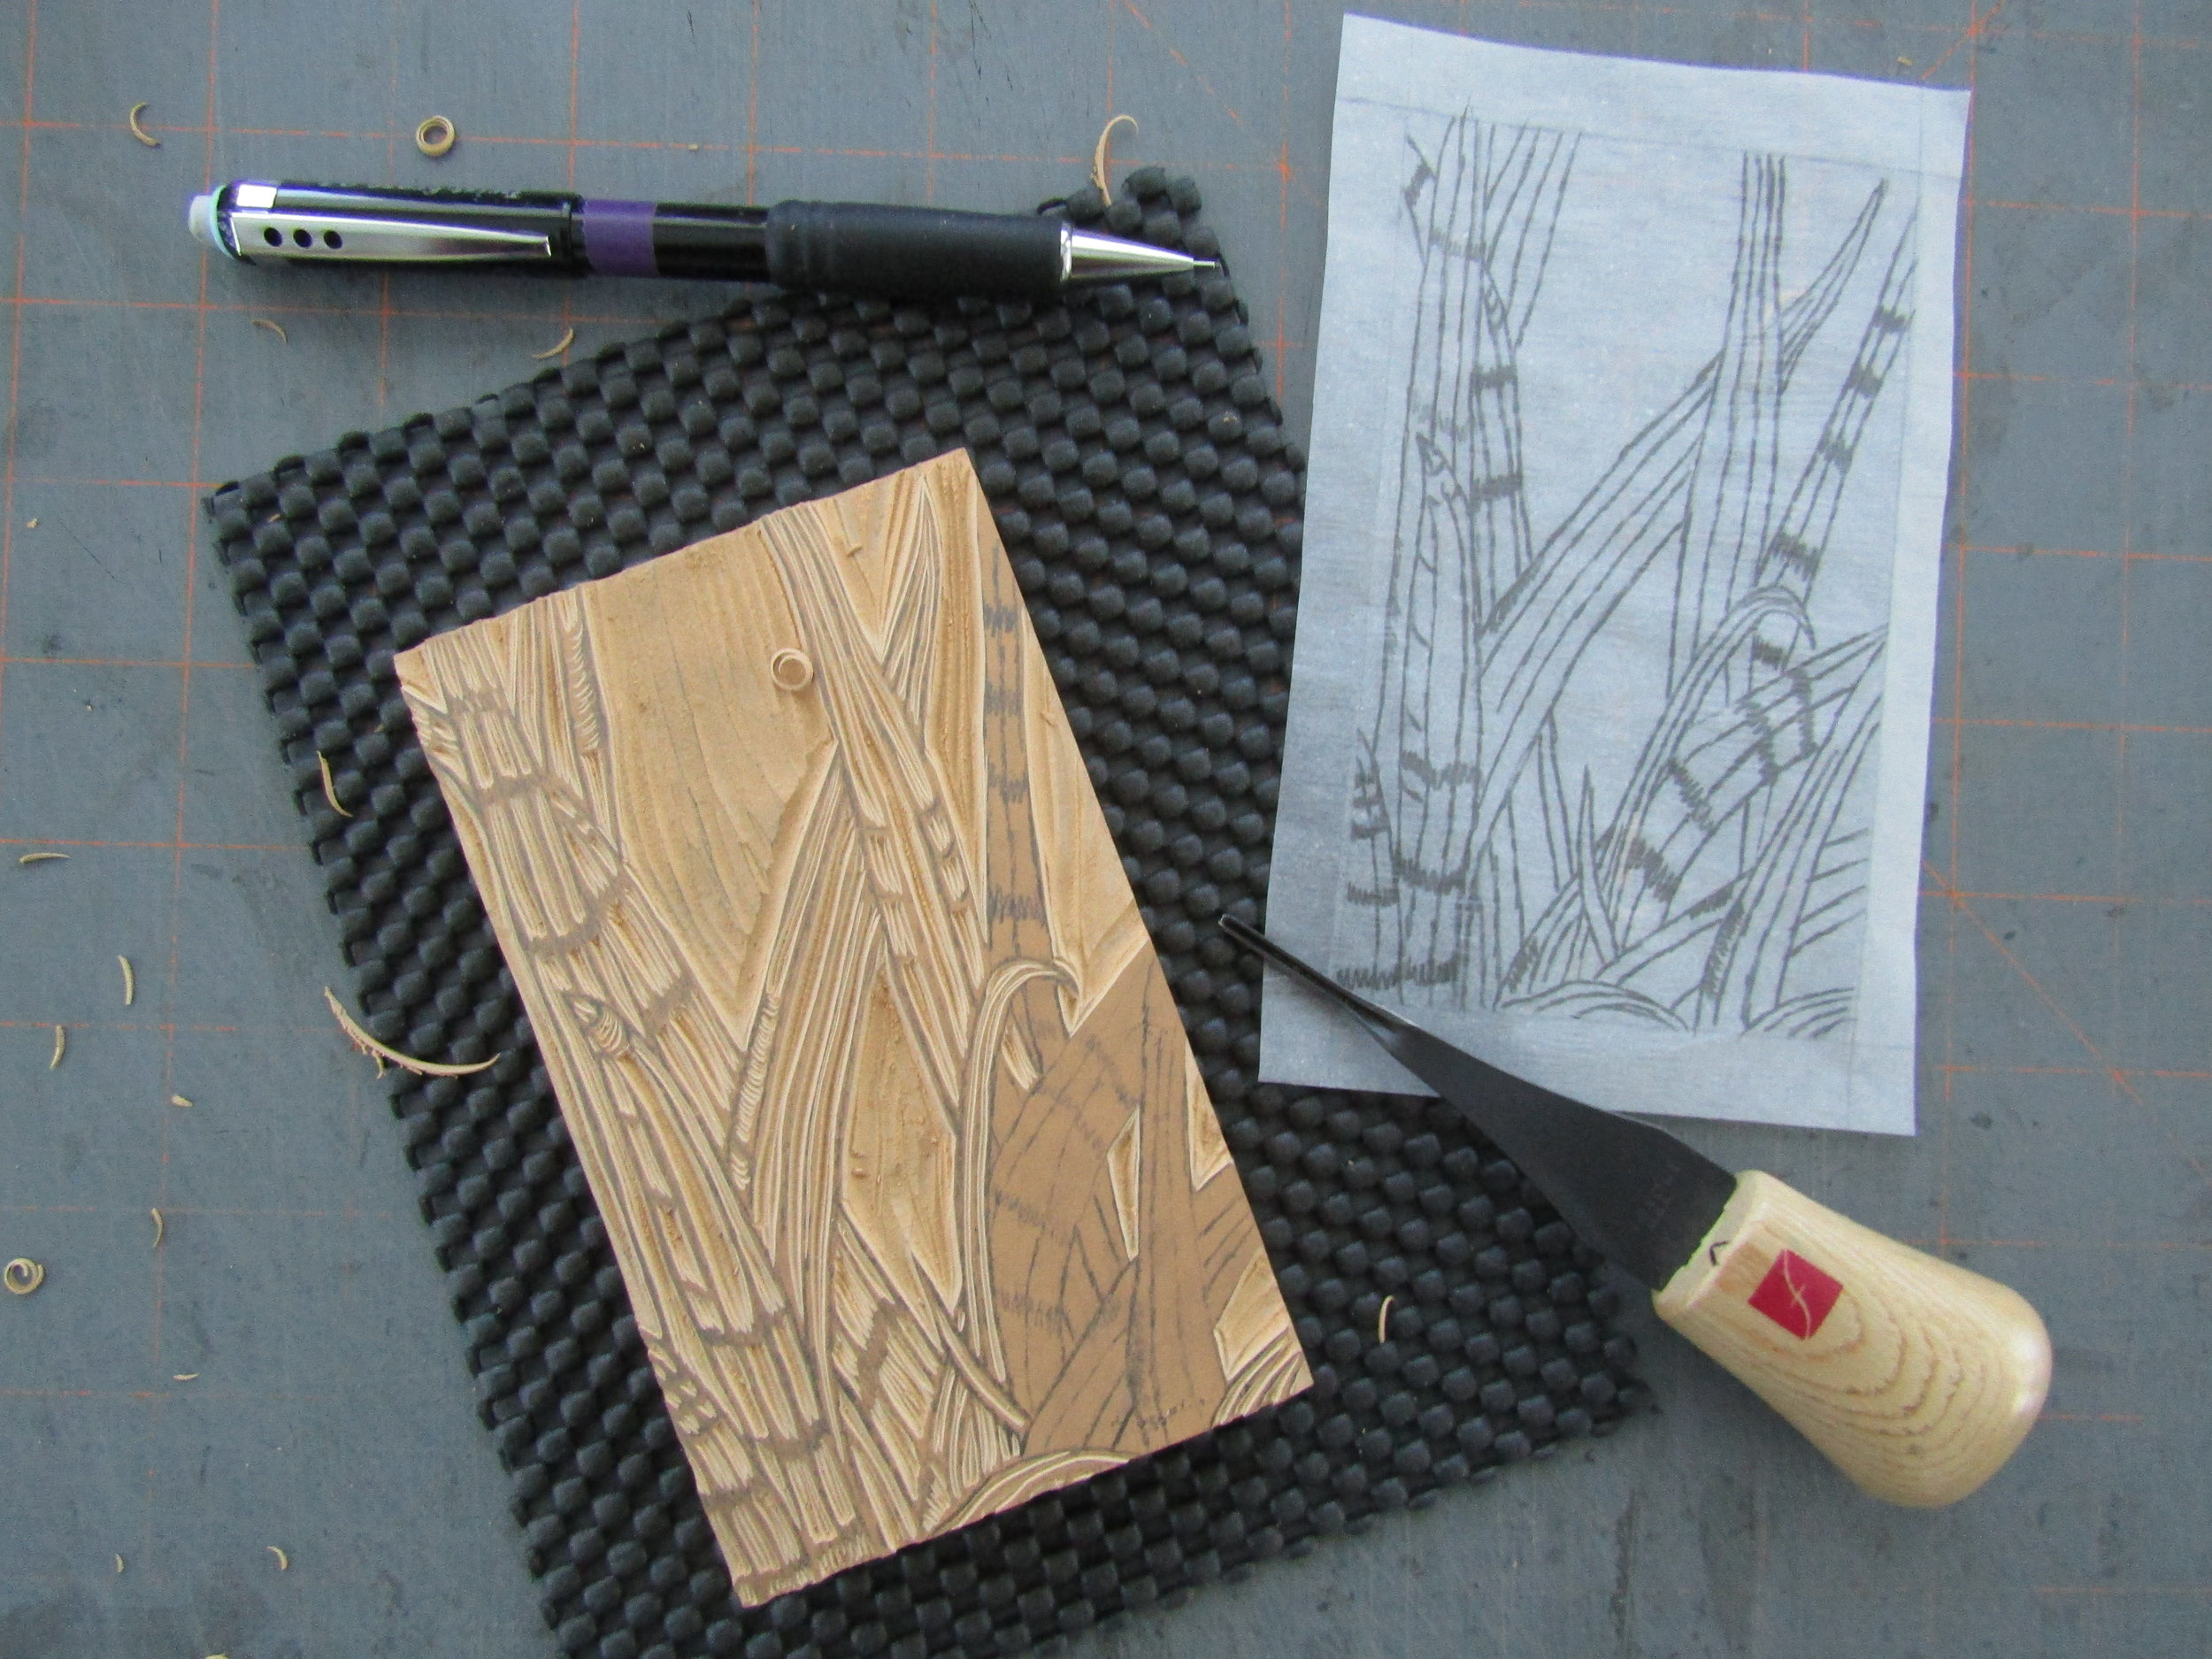 I also carved a block using an image of iris leaves. I wanted multiple layers to use for the book pages.